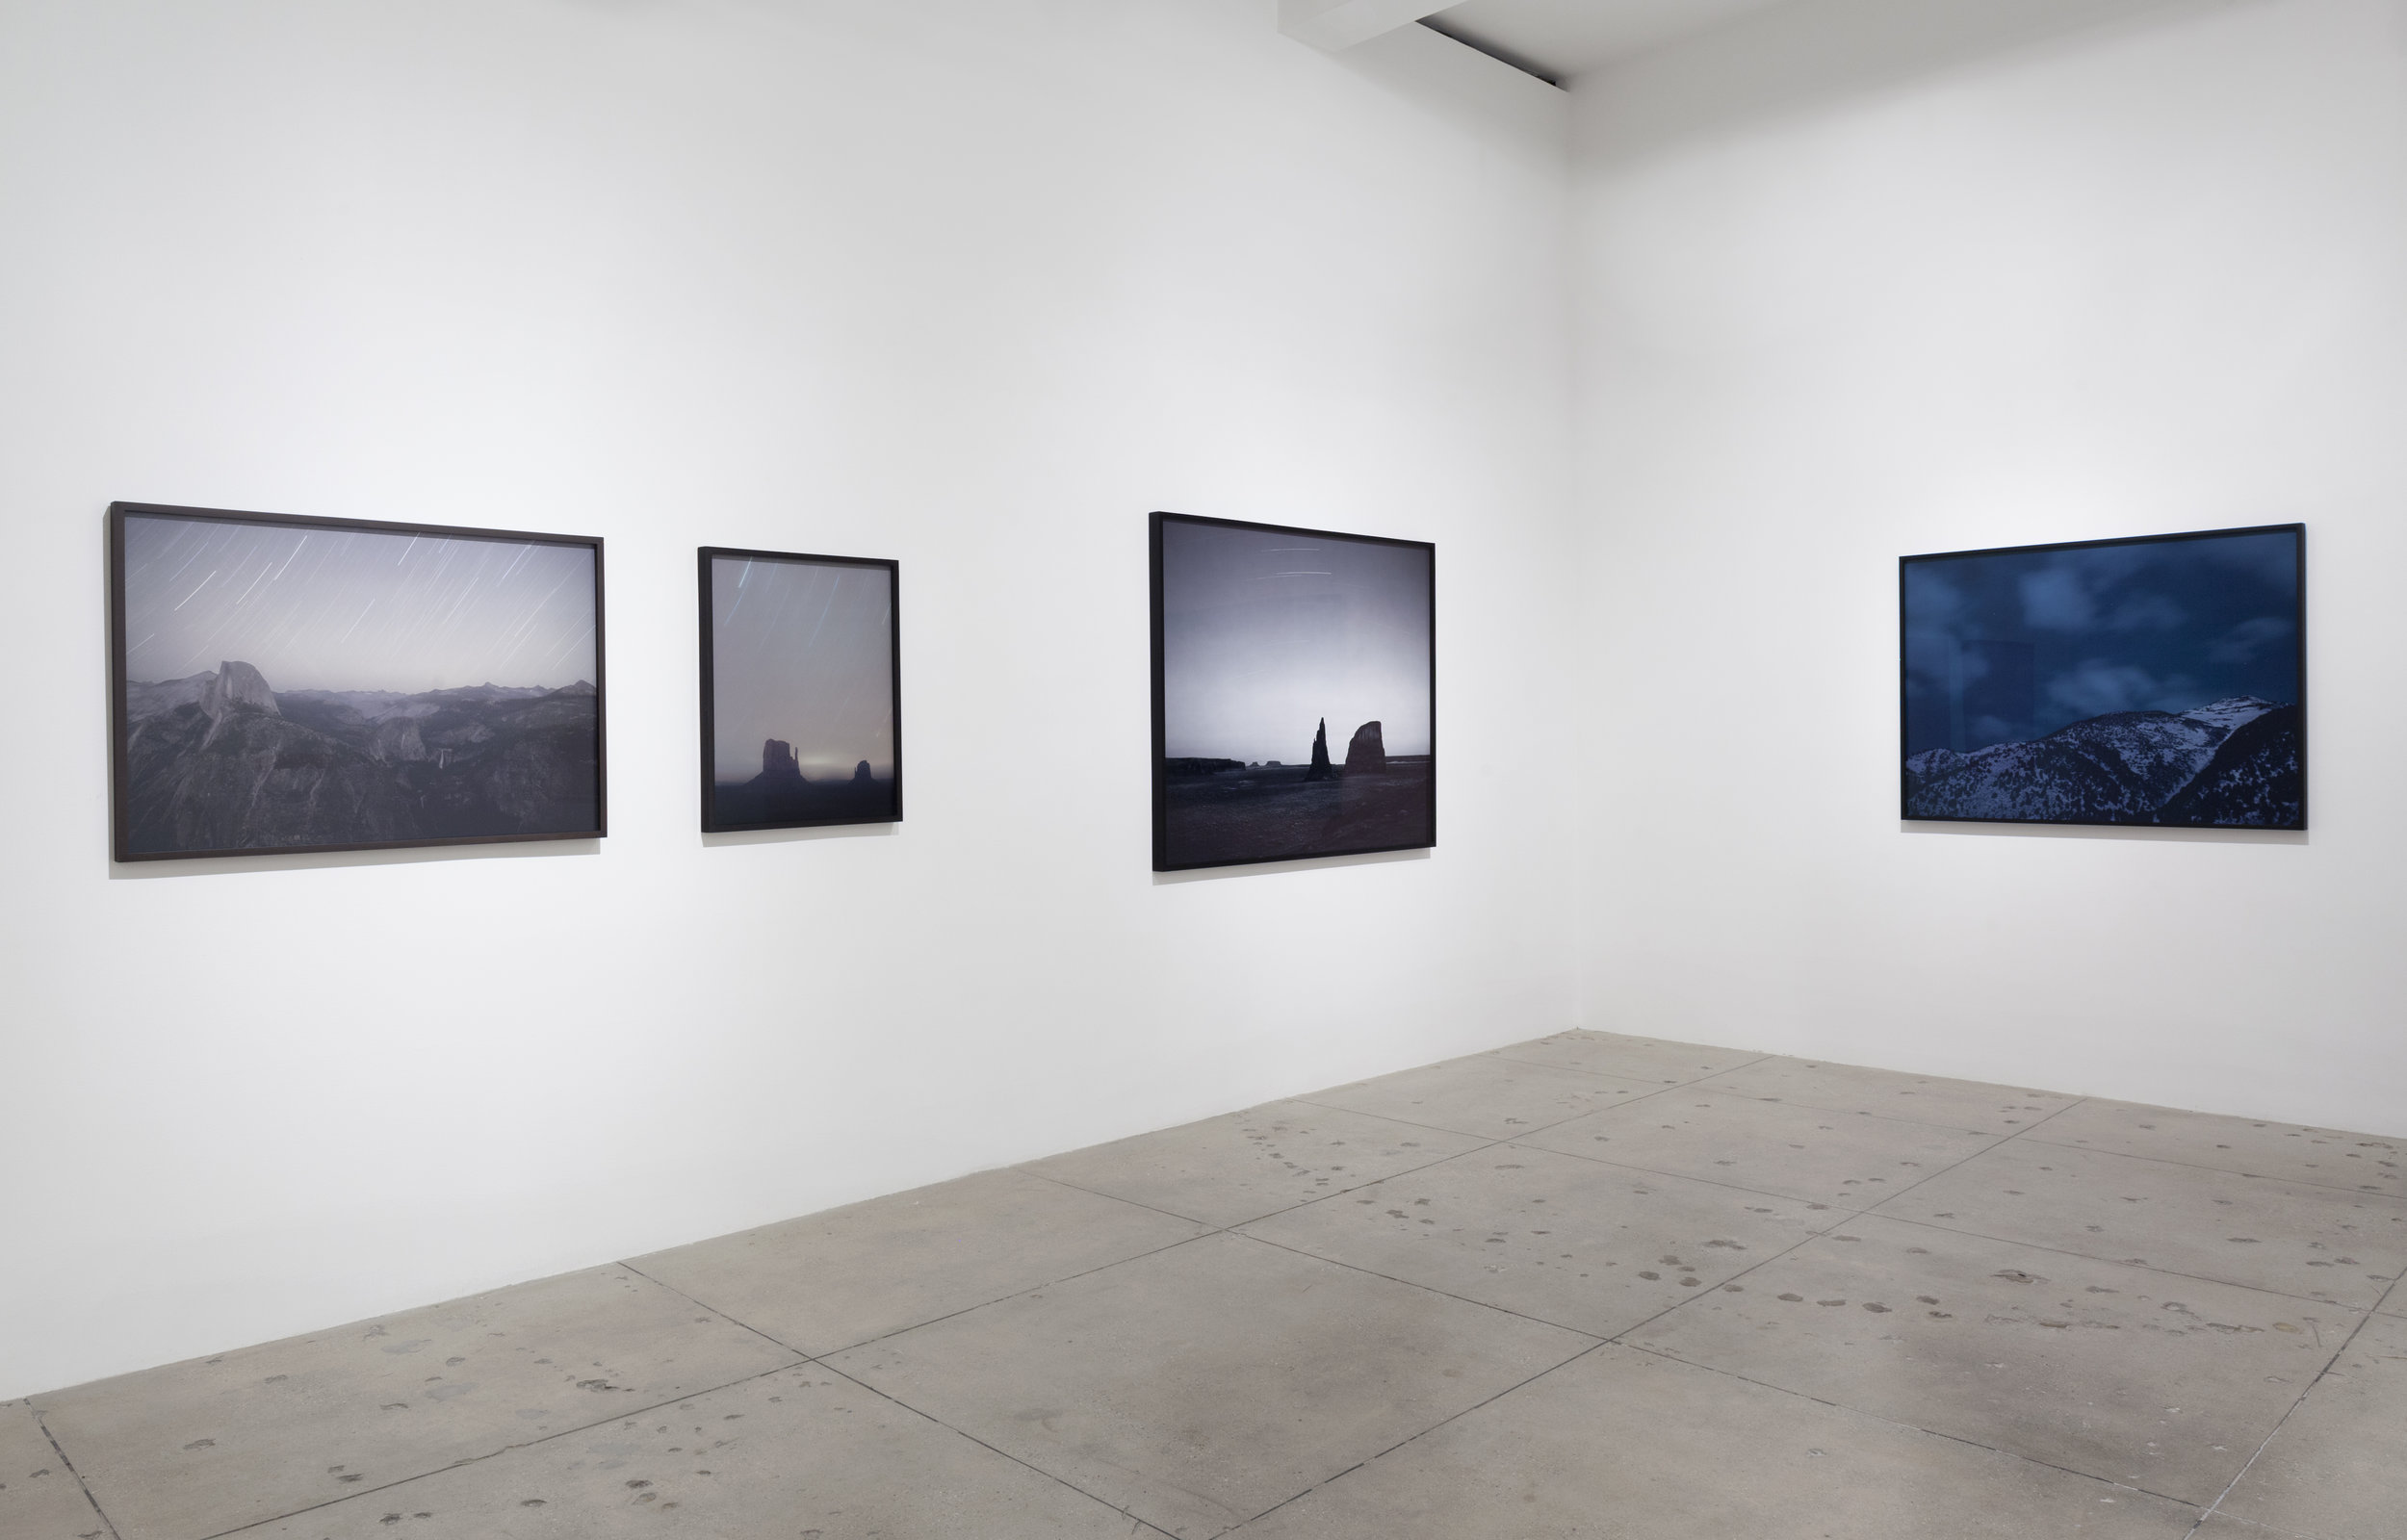 Sunset Decor, curated by Magali Arriola, lnstallation View, Marian Goodman Gallery, New York (From Left to Right) TREVOR PAGLEN Subsatellite Ferret-D Over the Eastern Sierra (Electronic Intelligence Satellite; USA 3), 2012